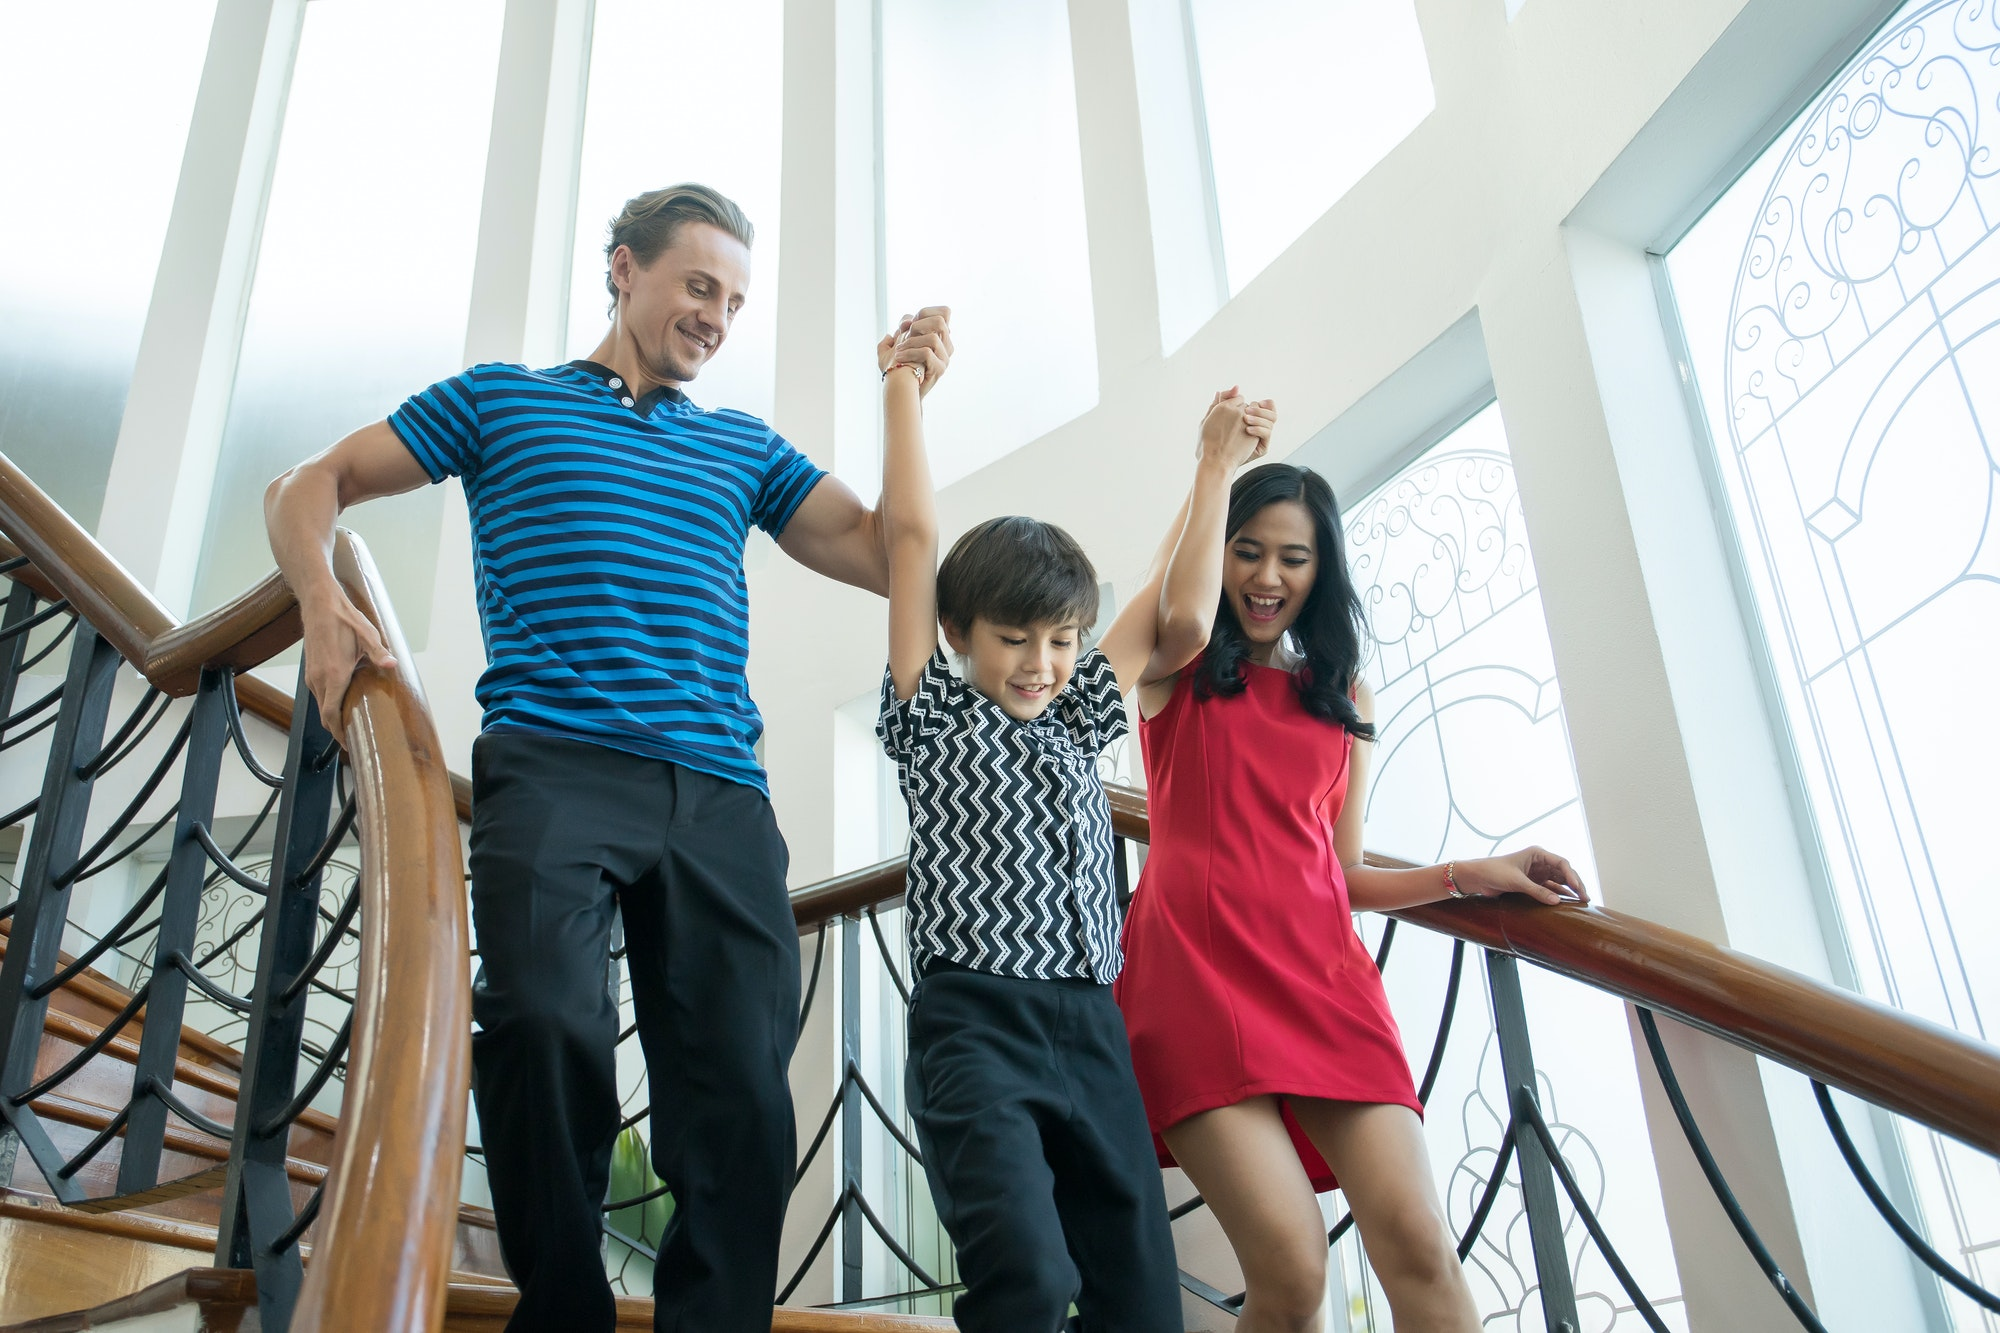 Family walk down the stairs in the house.